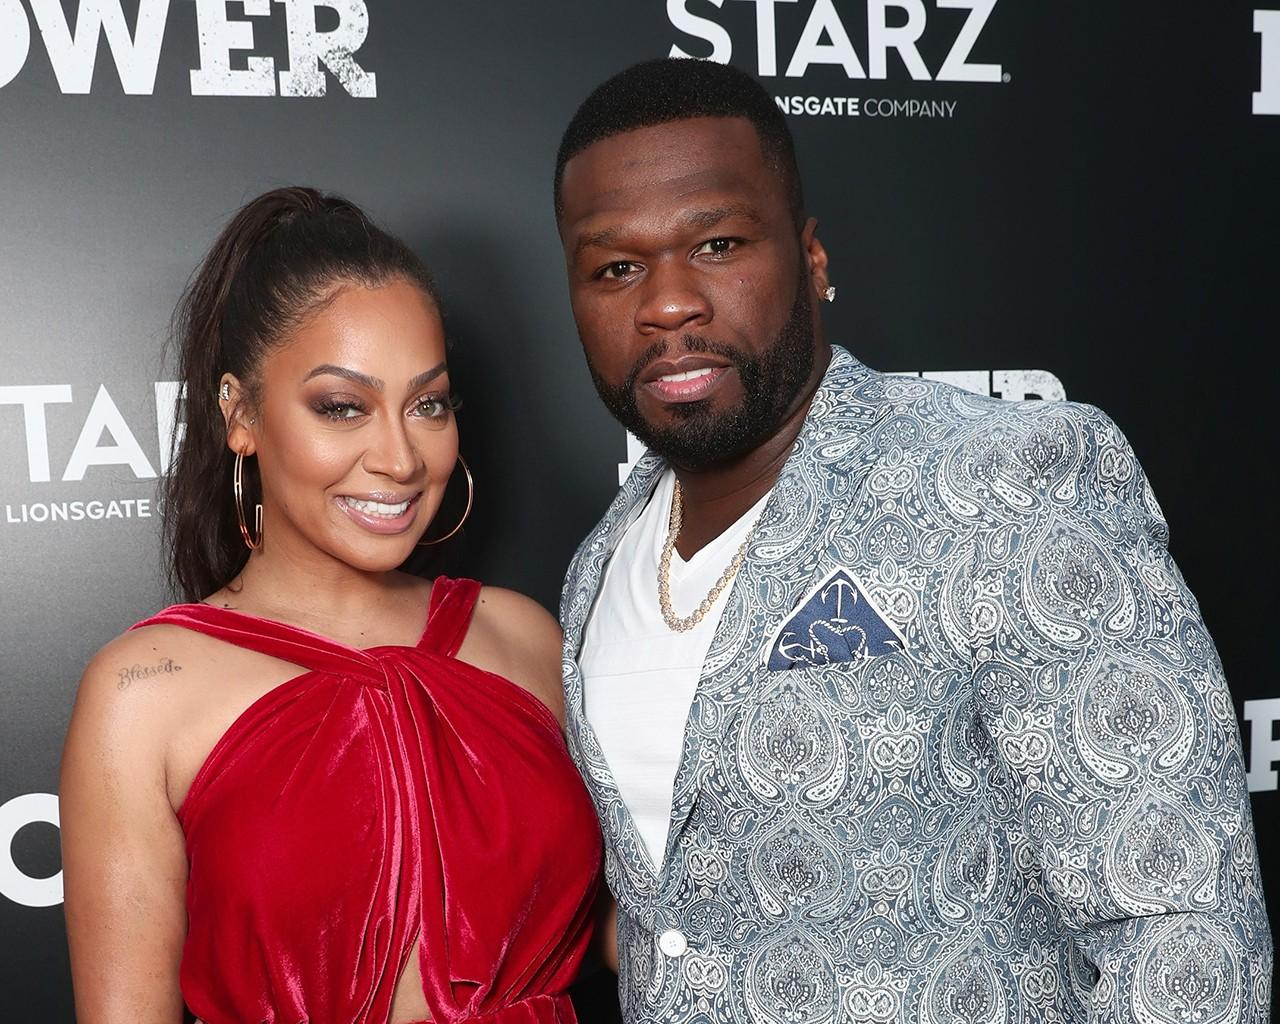 La La Anthony Wins $68,000 From A Slot Machine And 50 Cent Reacts - Here's His Post